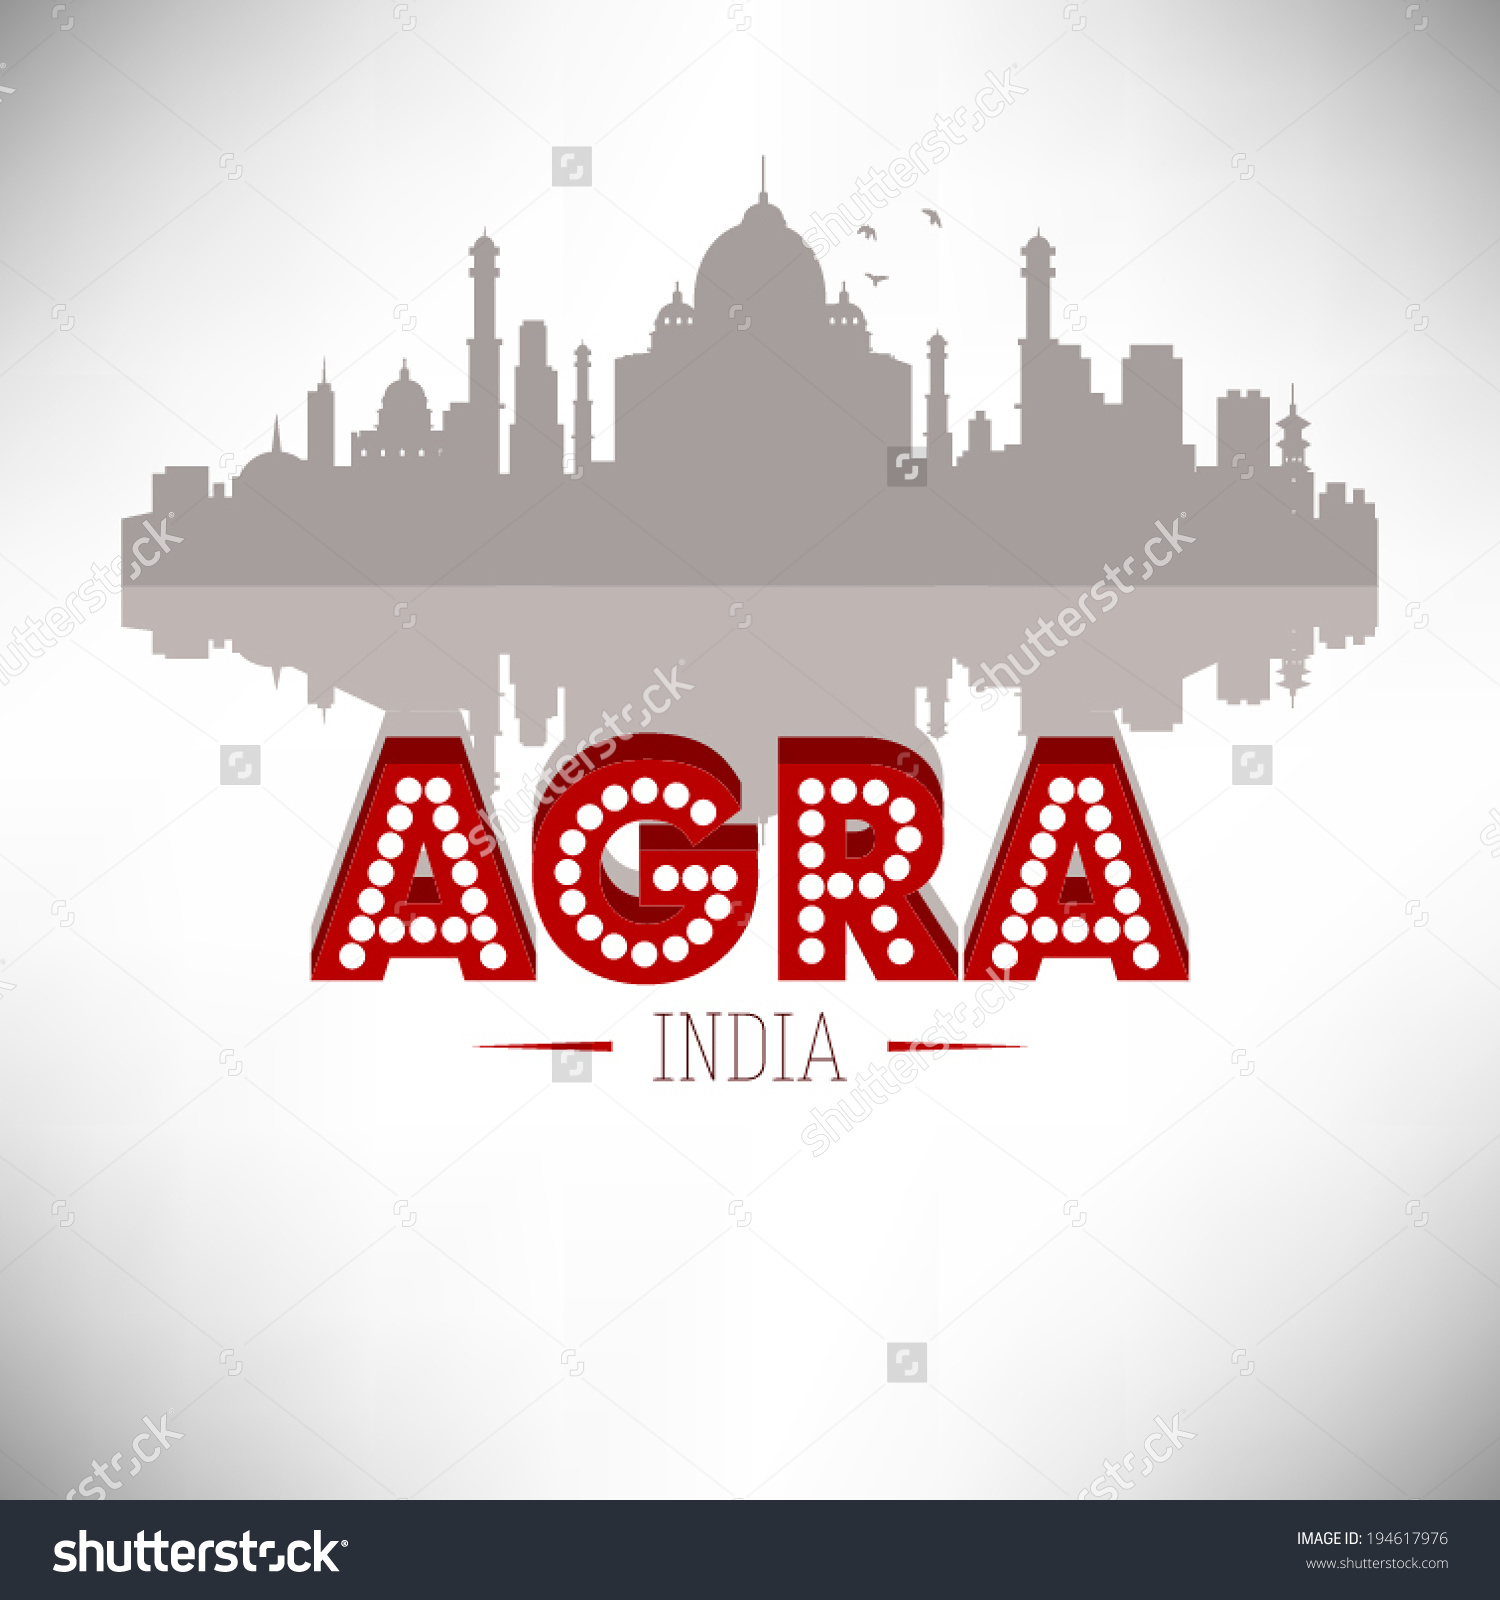 Agra India Skyline Silhouette Design Vector Stock Vector 194617976.